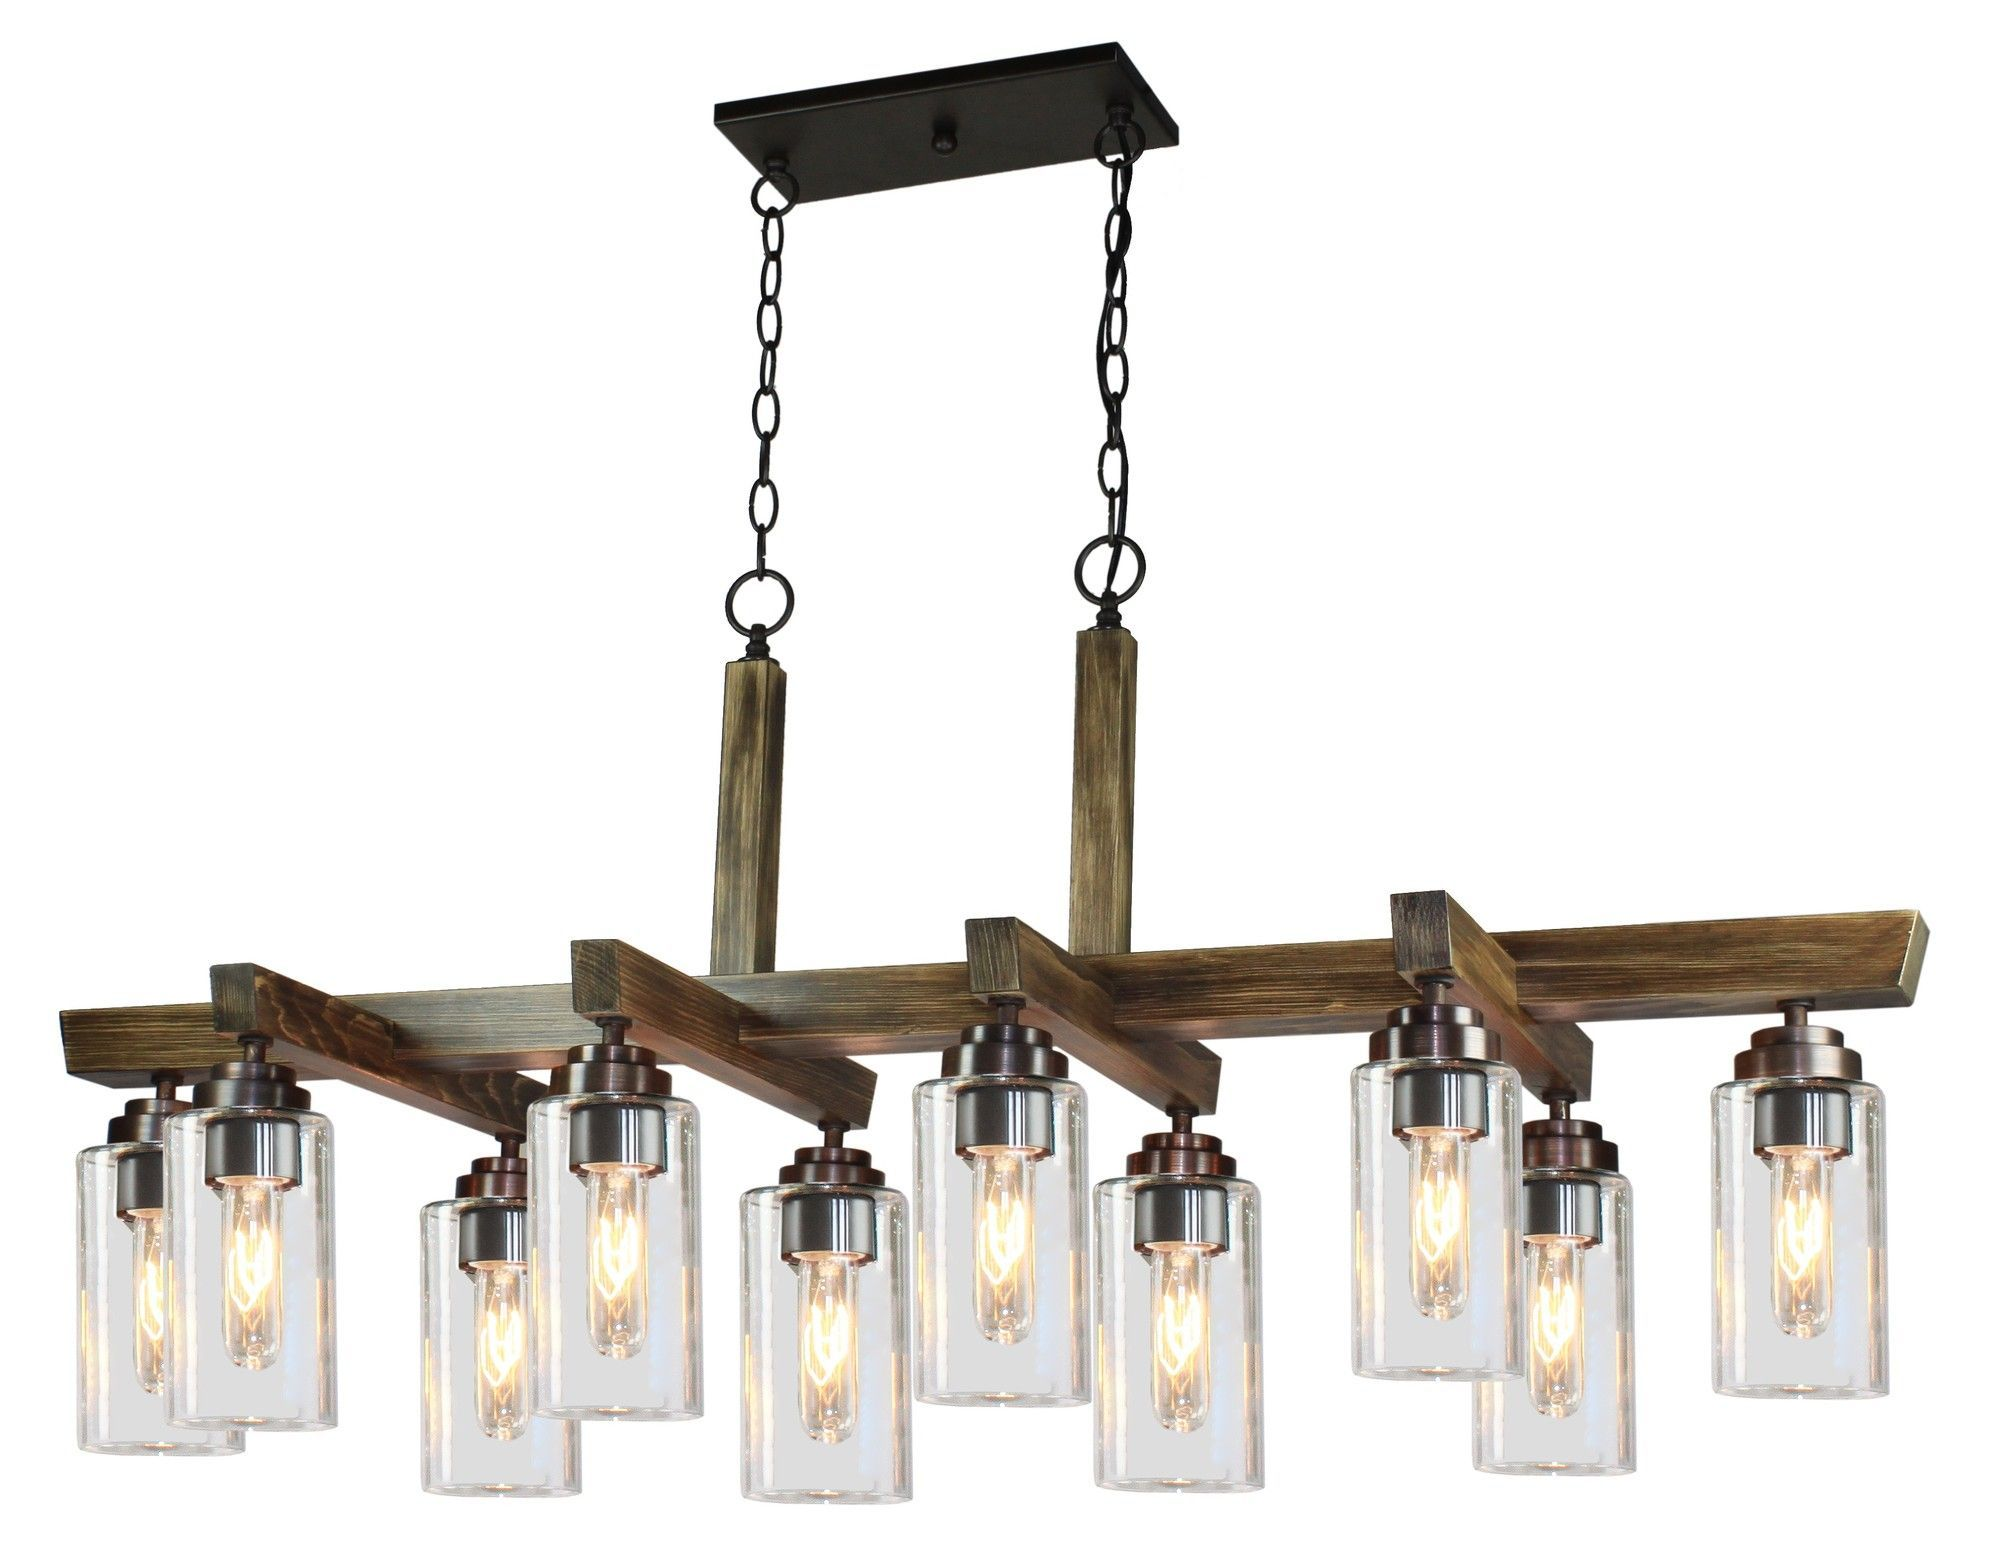 Home Glow 10 Light Pendant